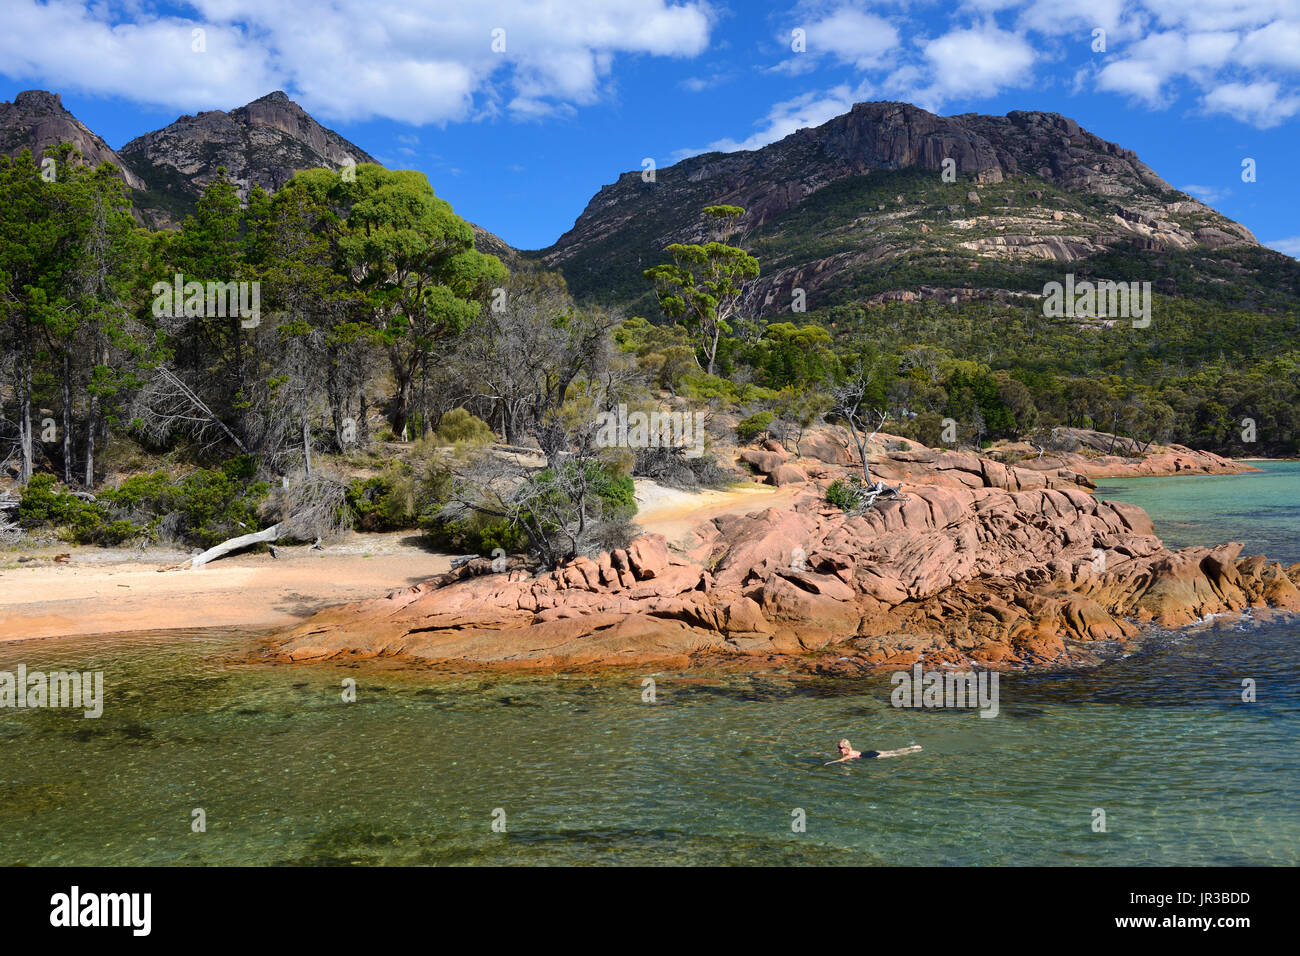 Swimmers at Honeymoon Bay in Freycinet National Park on East Coast of Tasmania, Australia - Stock Image